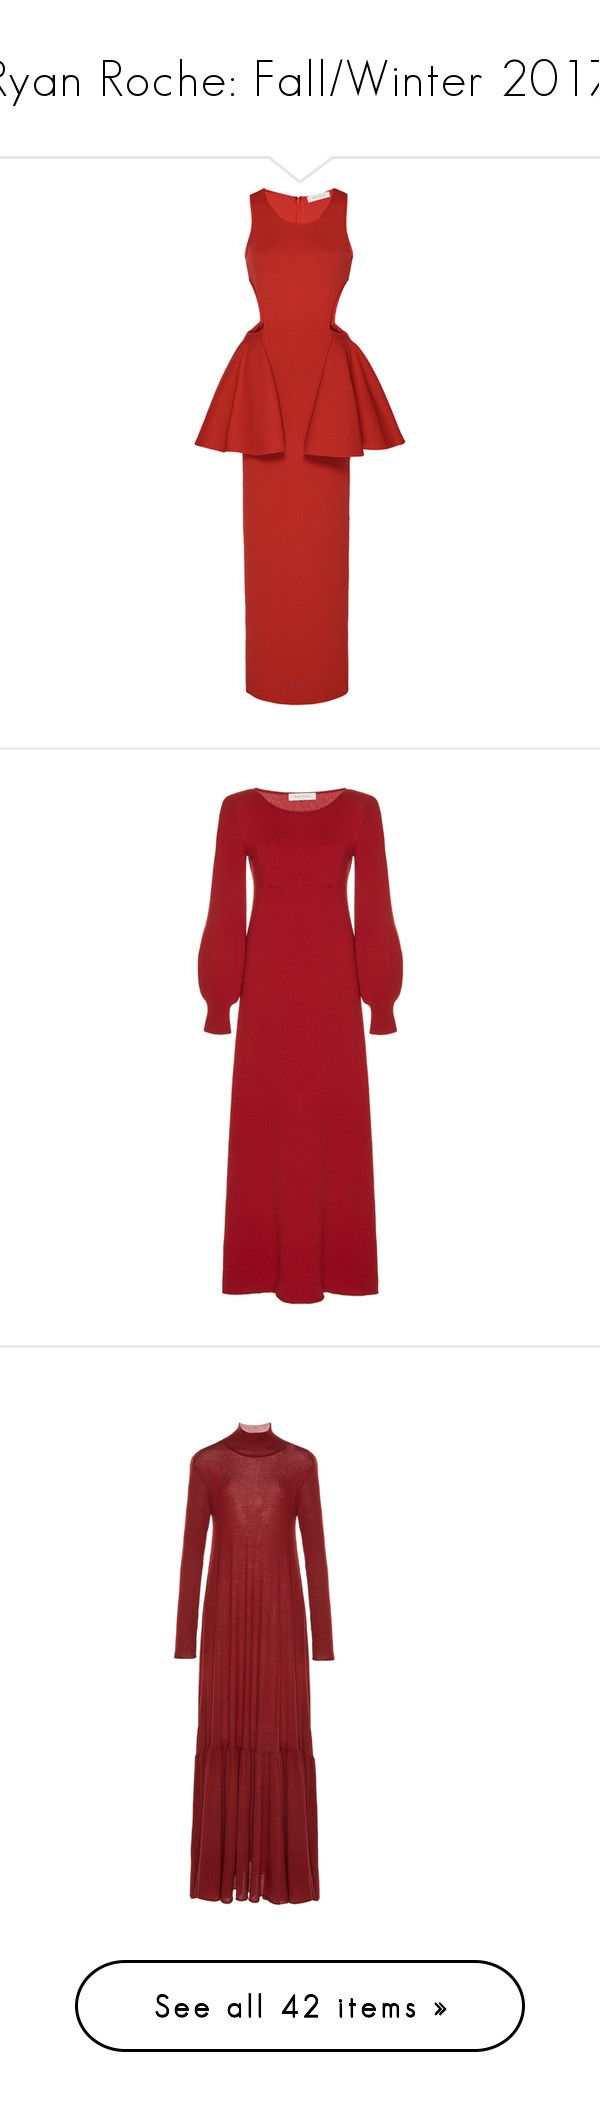 """""""Ryan Roche: Fall/Winter 2017"""" by livnd ❤ liked on Polyvore featuring ryanroche, fallwinter2017, livndfashion, livndryanroche, dresses, red peplum dress, cut out dresses, peplum dress, red cut out dress and red cut-out dresses"""